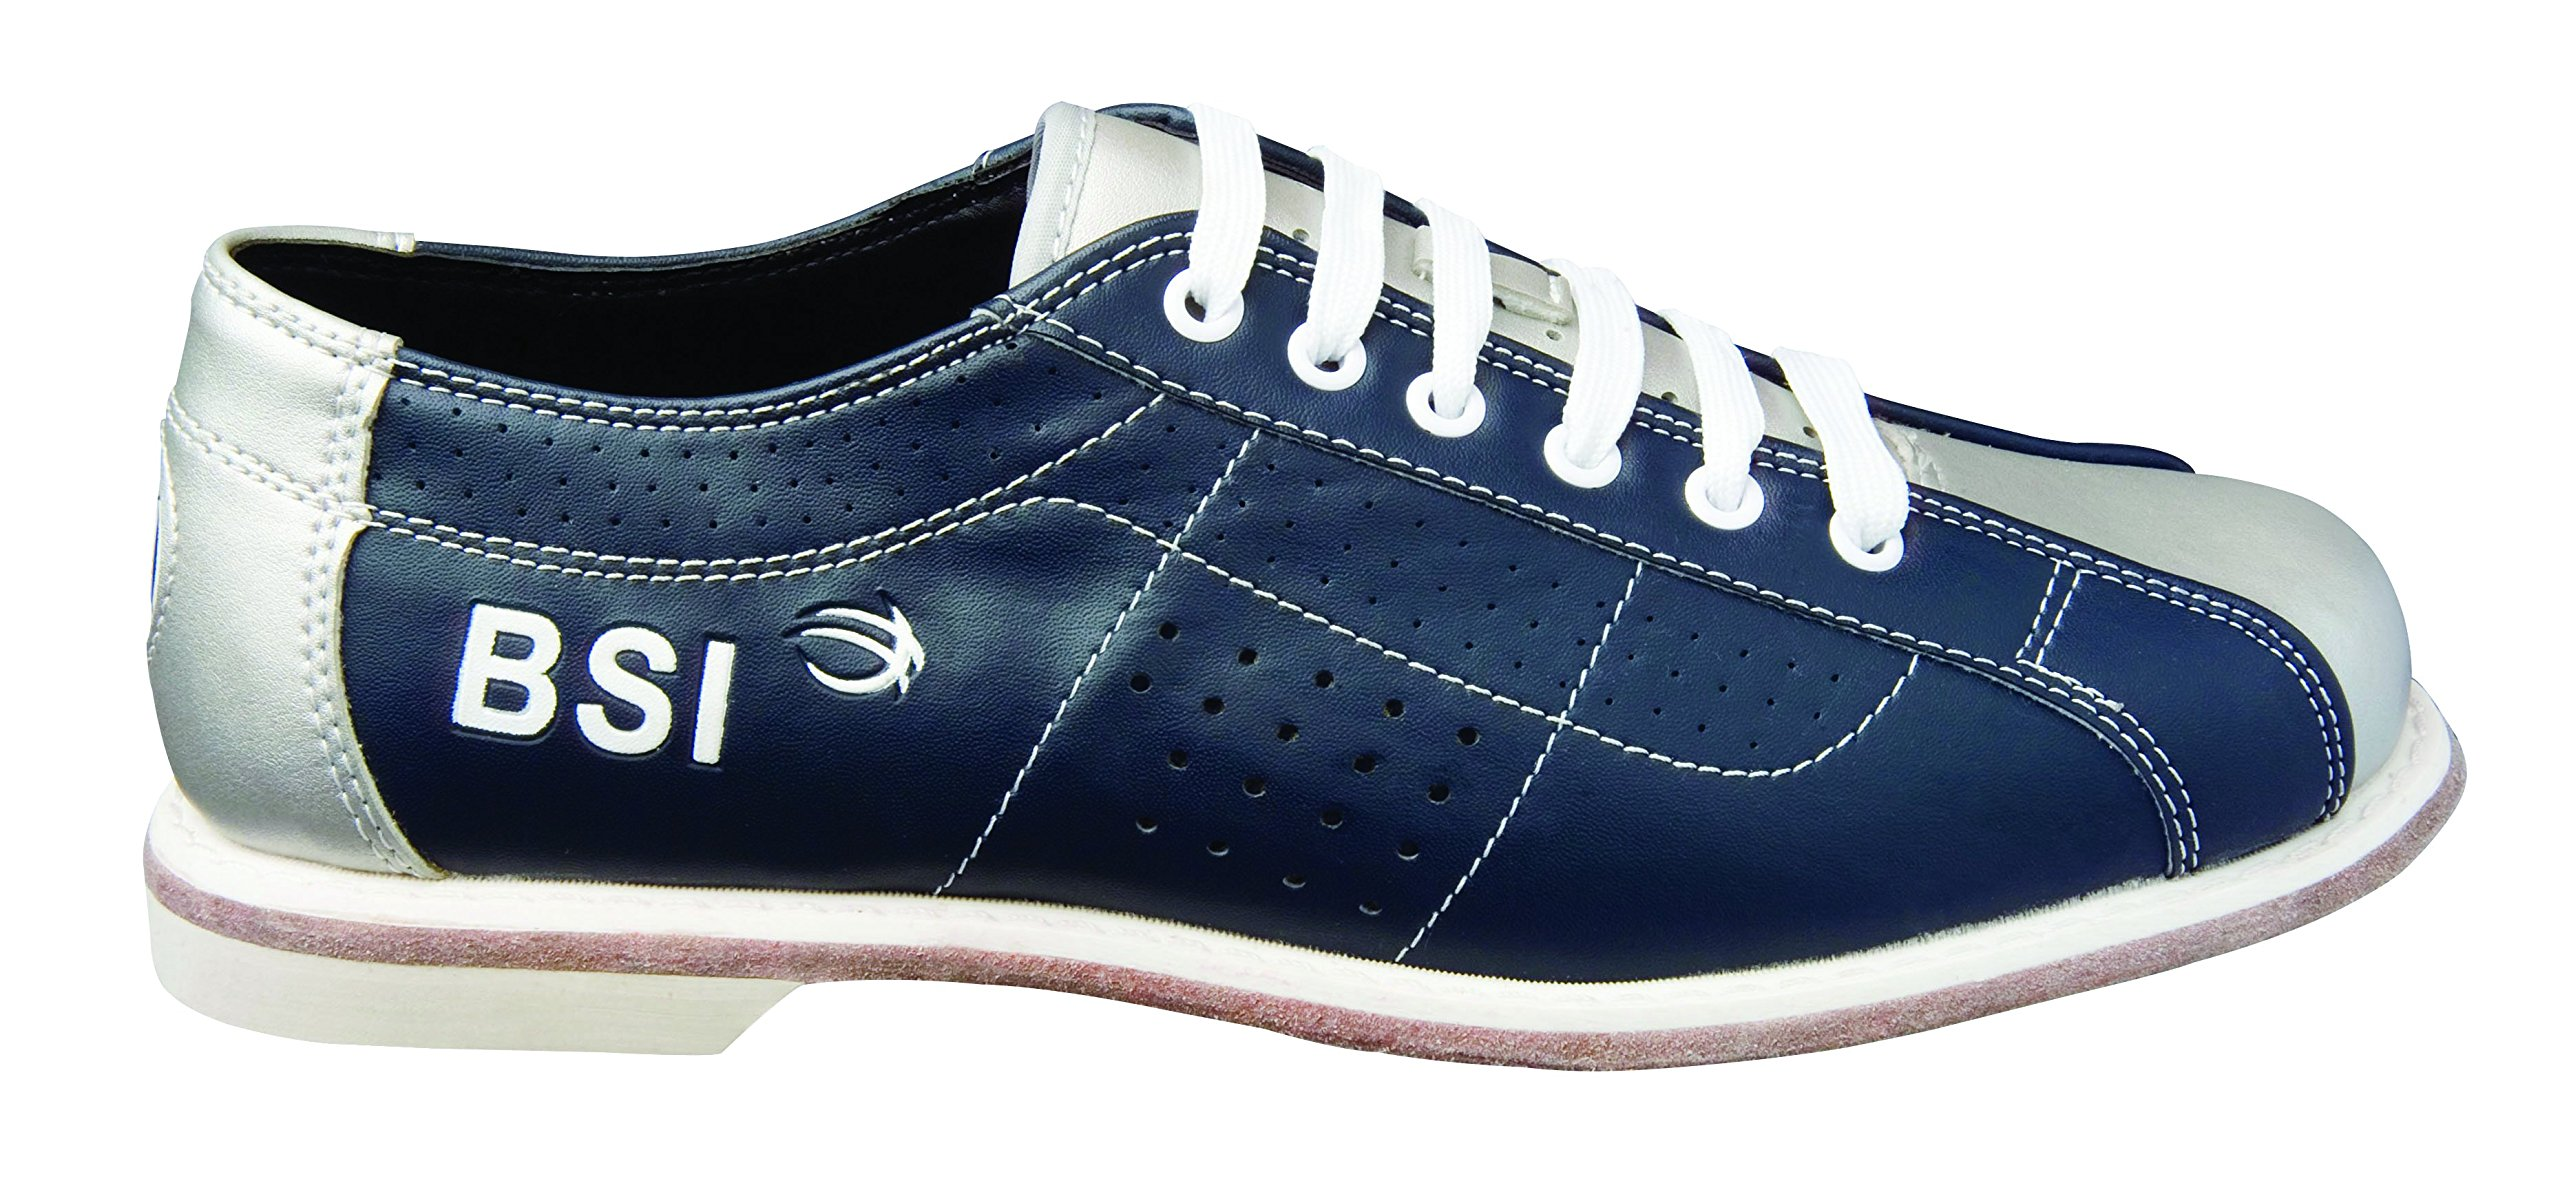 BSI Dual Size Rental Shoes, Blue/Silver, 7.5 by BSI